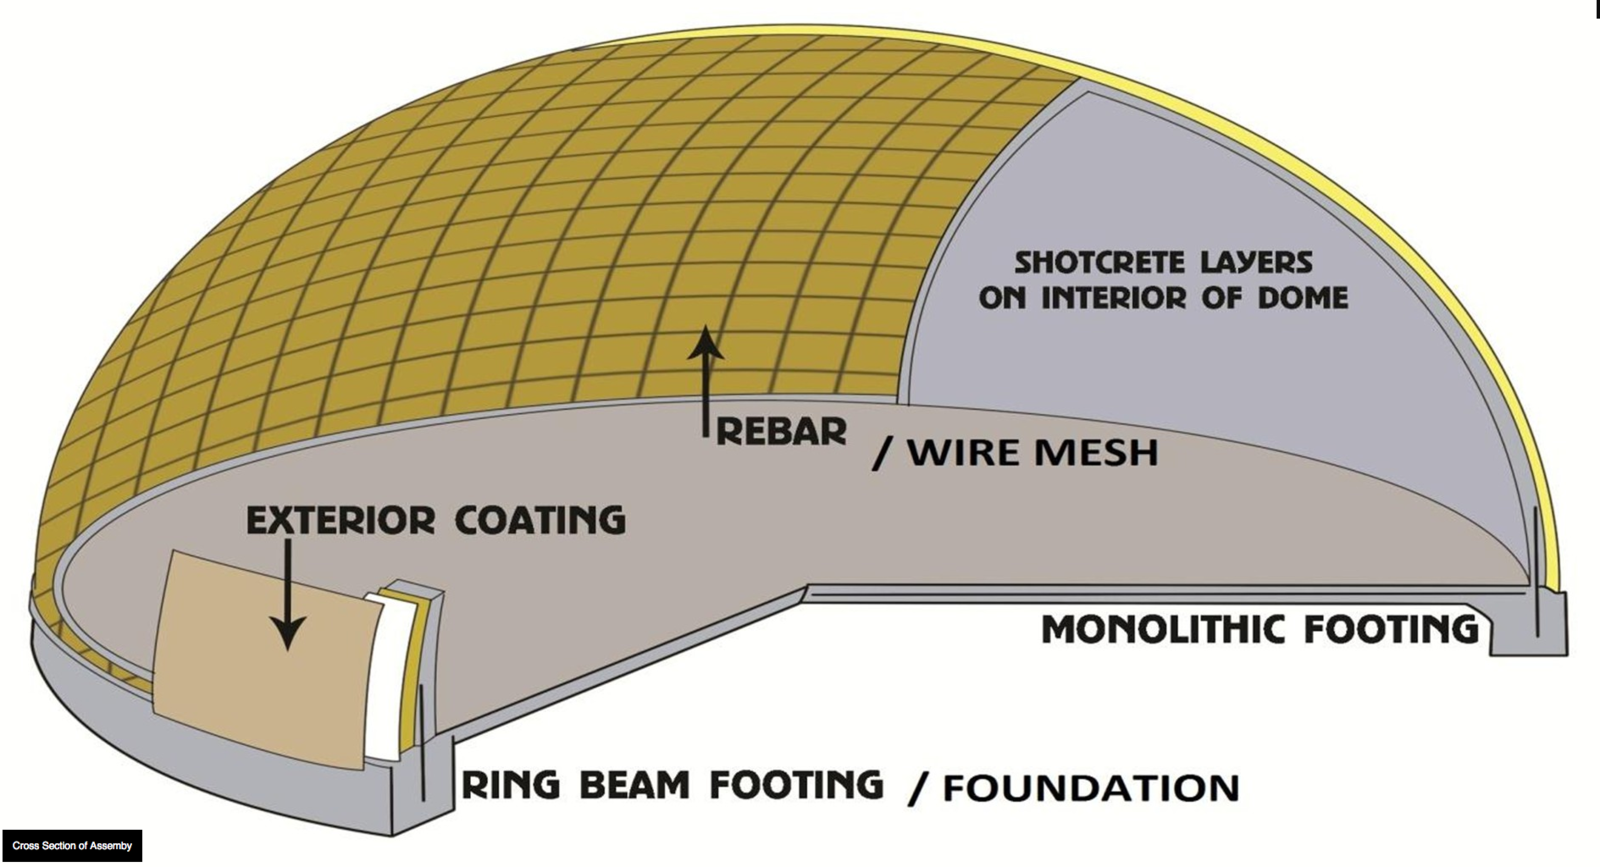 USA Domes' EPS personal dome structure is impervious to natural disasters, hurricanes, earthquakes, and the shape is naturally wind resistant. Each dome consists of 8 pieces that are fastened together, then concreted and textured. Assembly of the dome takes less than a day which cuts the cost of labor tremendously. These domes can be used in back yards, as single family homes, as in-law quarters, man caves, game rooms, storm shelters, etc, etc.  You can use the materials to build about anything, including a single family home, adding a garage space, or even starting a business. The price for a single dome kit is $10,900.  Photo 5 of 13 in Make Your Dome Dreams Come True With These 12 Kit Home Companies